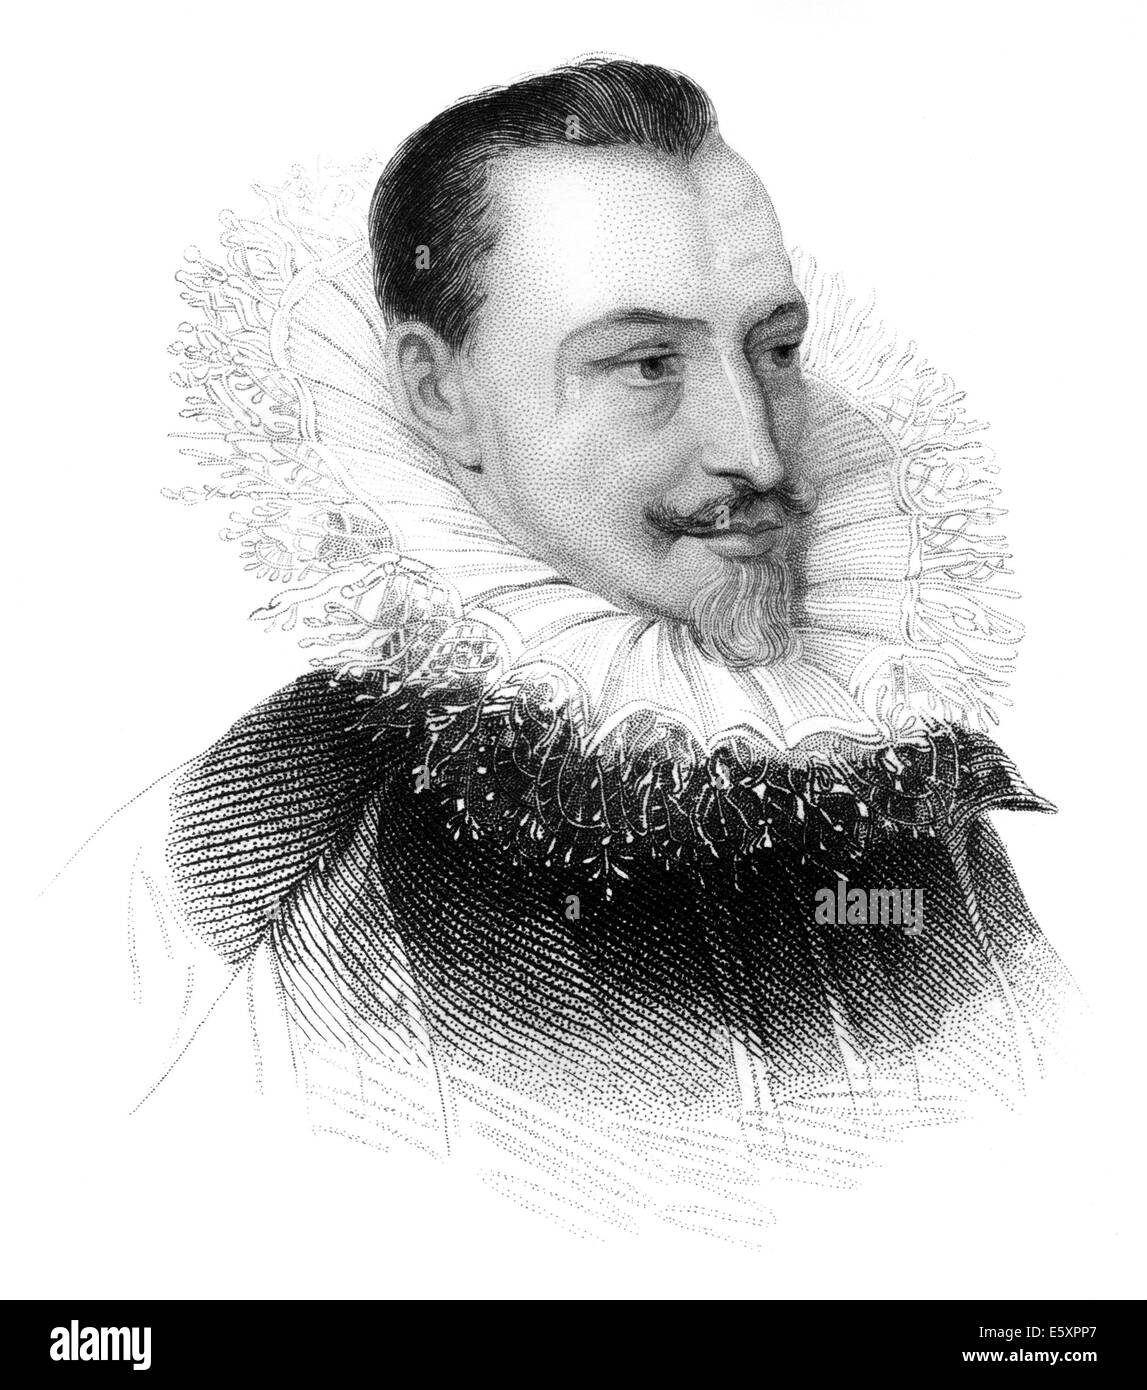 Portrait of Edmund Spenser, ca. 1552 - 1599, an English poet, - Stock Image